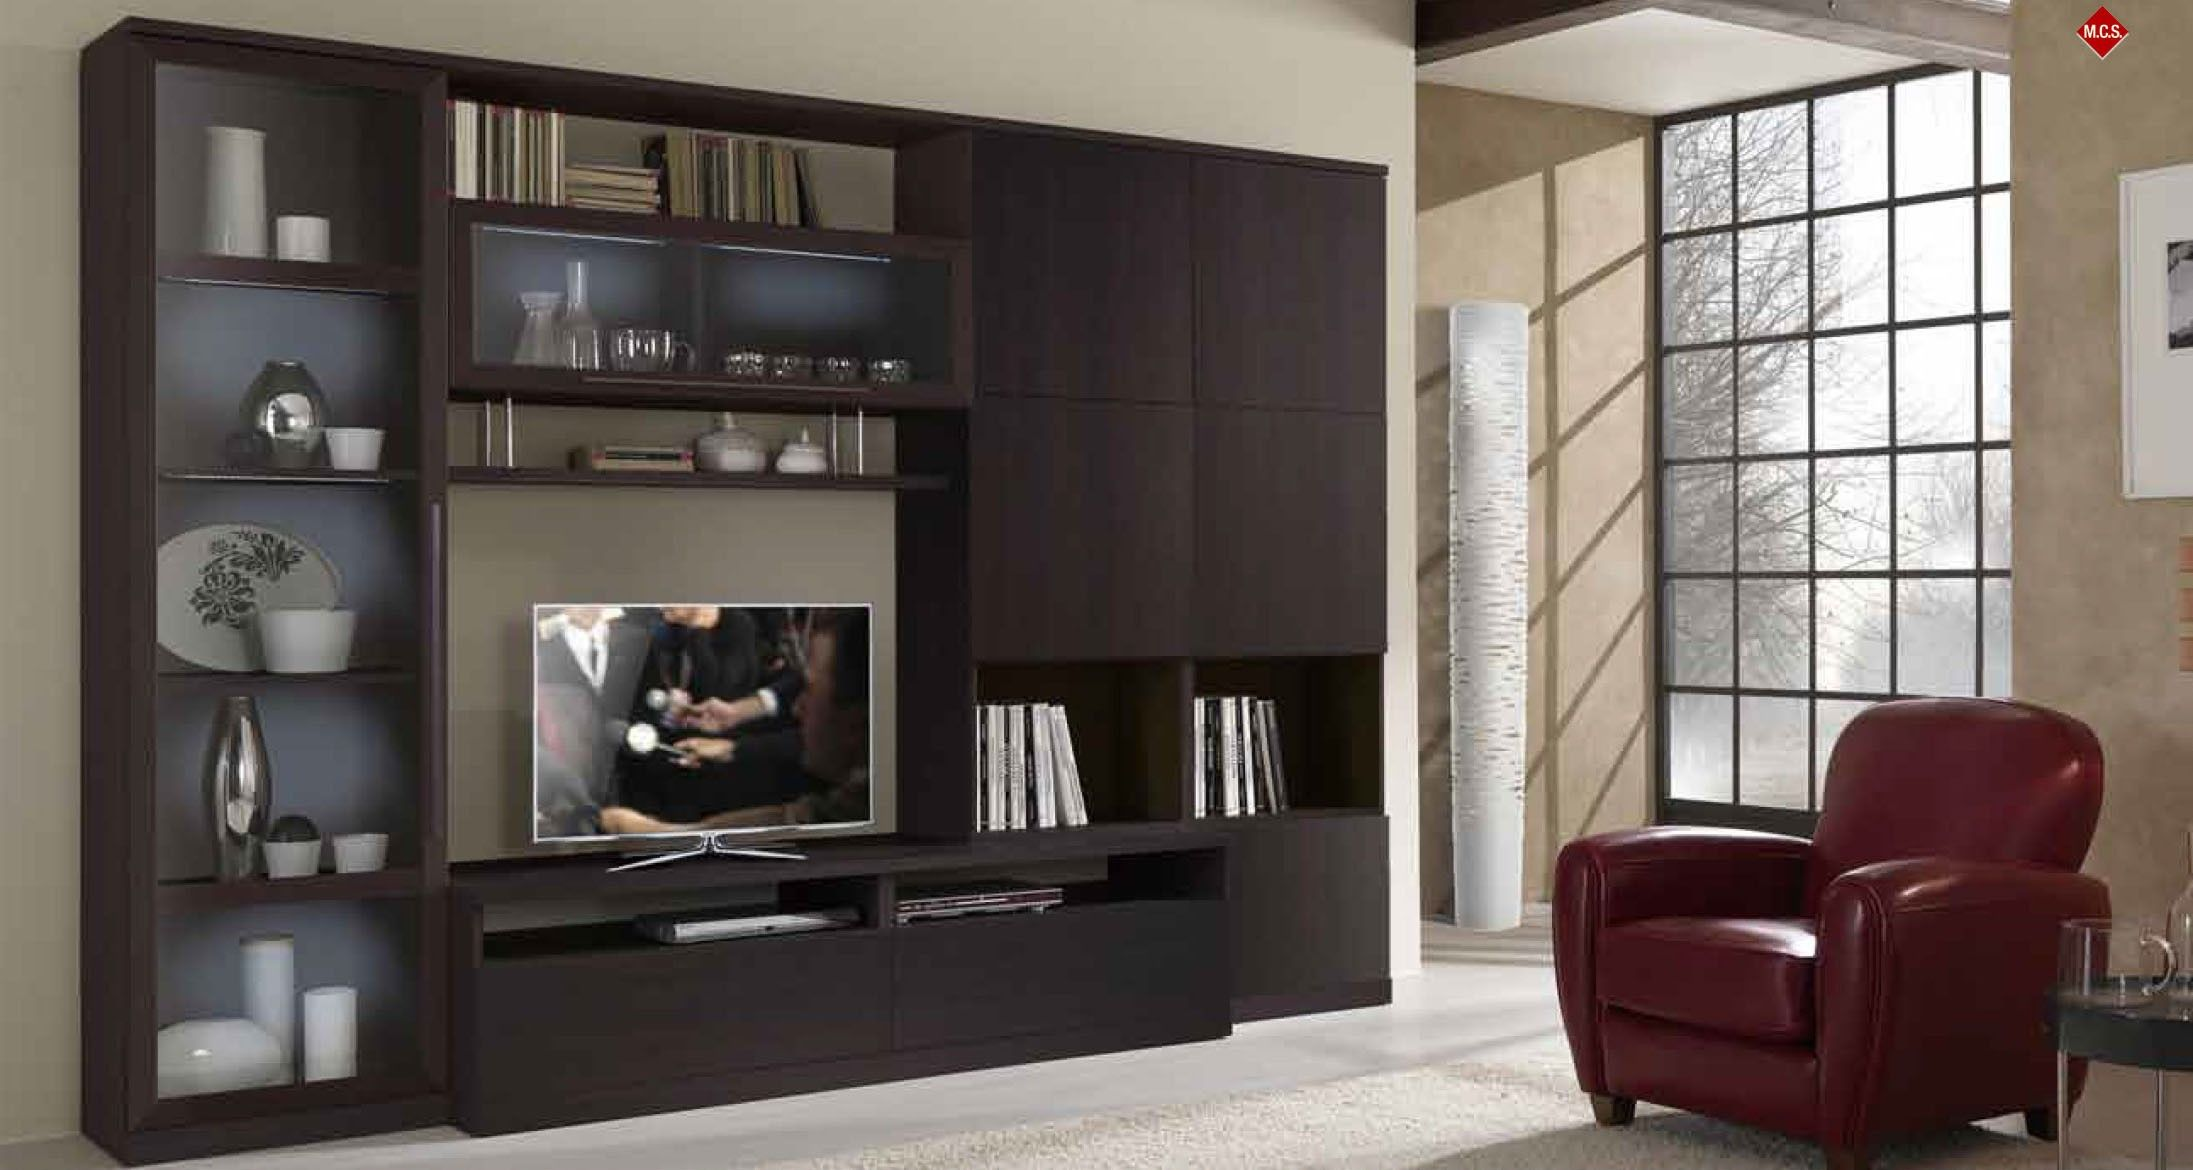 Wall Cabinets Living Room Home Built In Bar And Wall Unit Ideas Magnificent Living Room